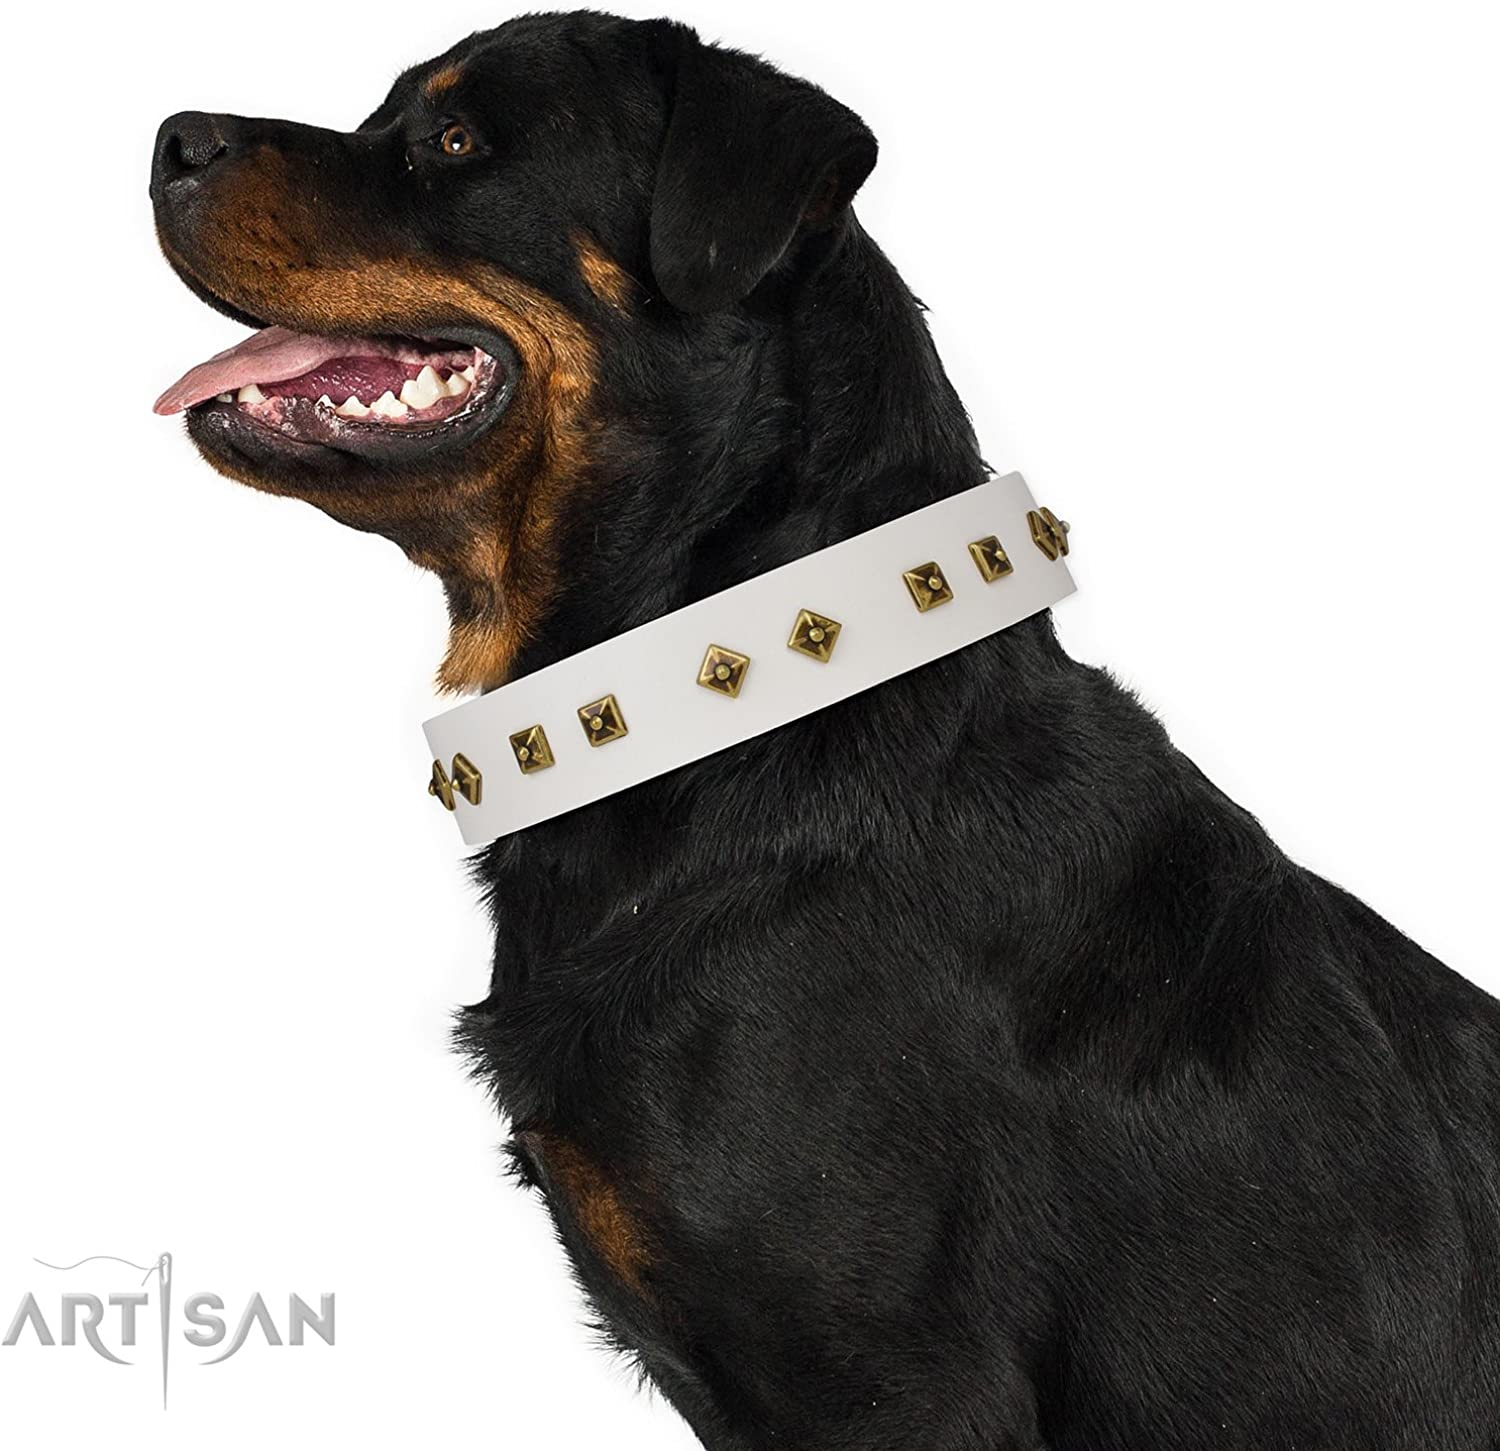 FDT Artisan 34 inch Studded White Leather Dog Collar  Dimonds & Squares  1 1 2 inch (40 mm) Wide  Gift Box Included